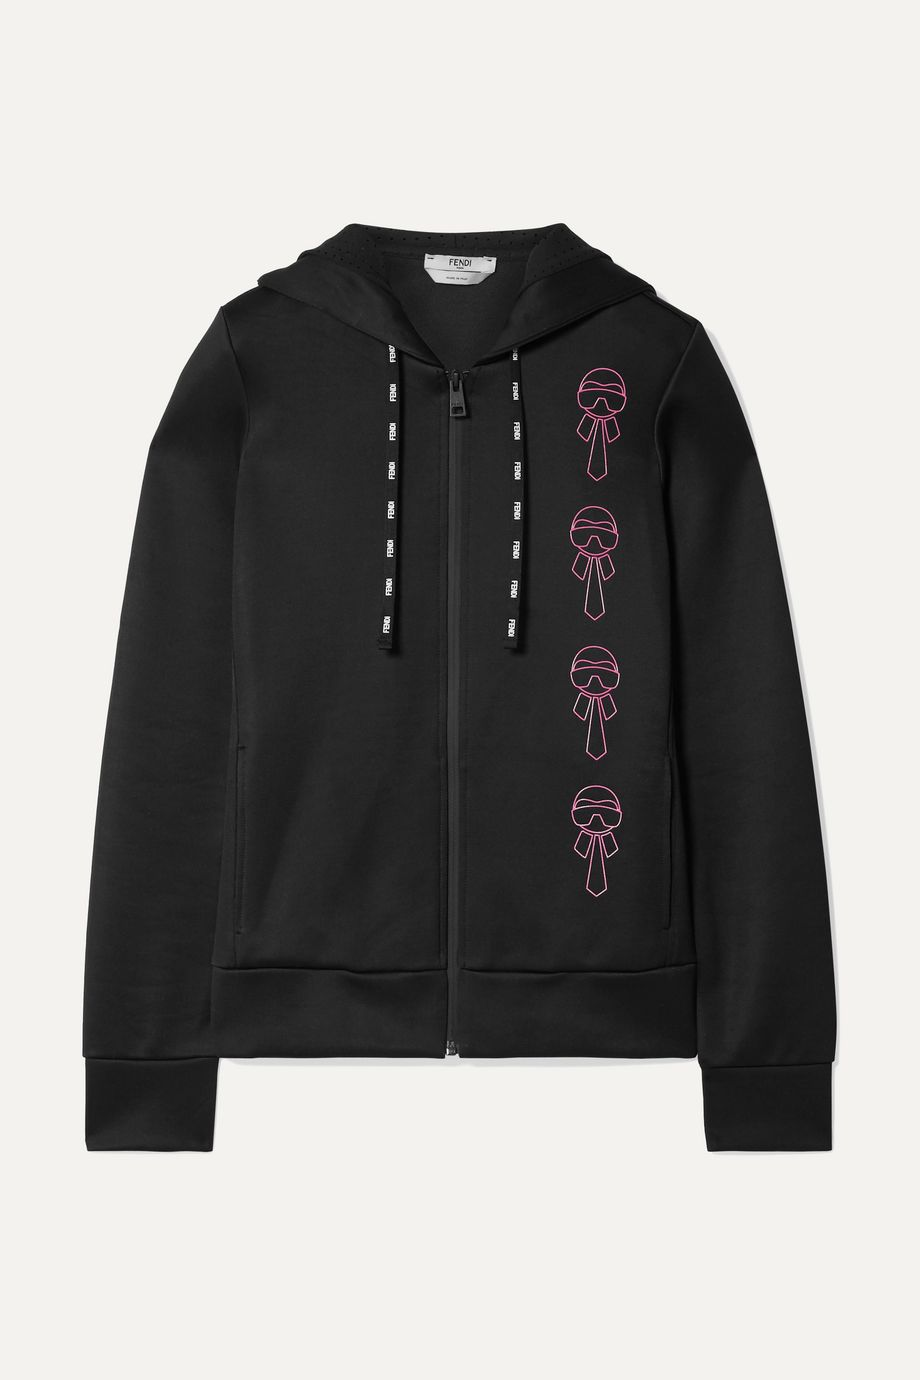 Fendi Karlito embellished scuba hooded top